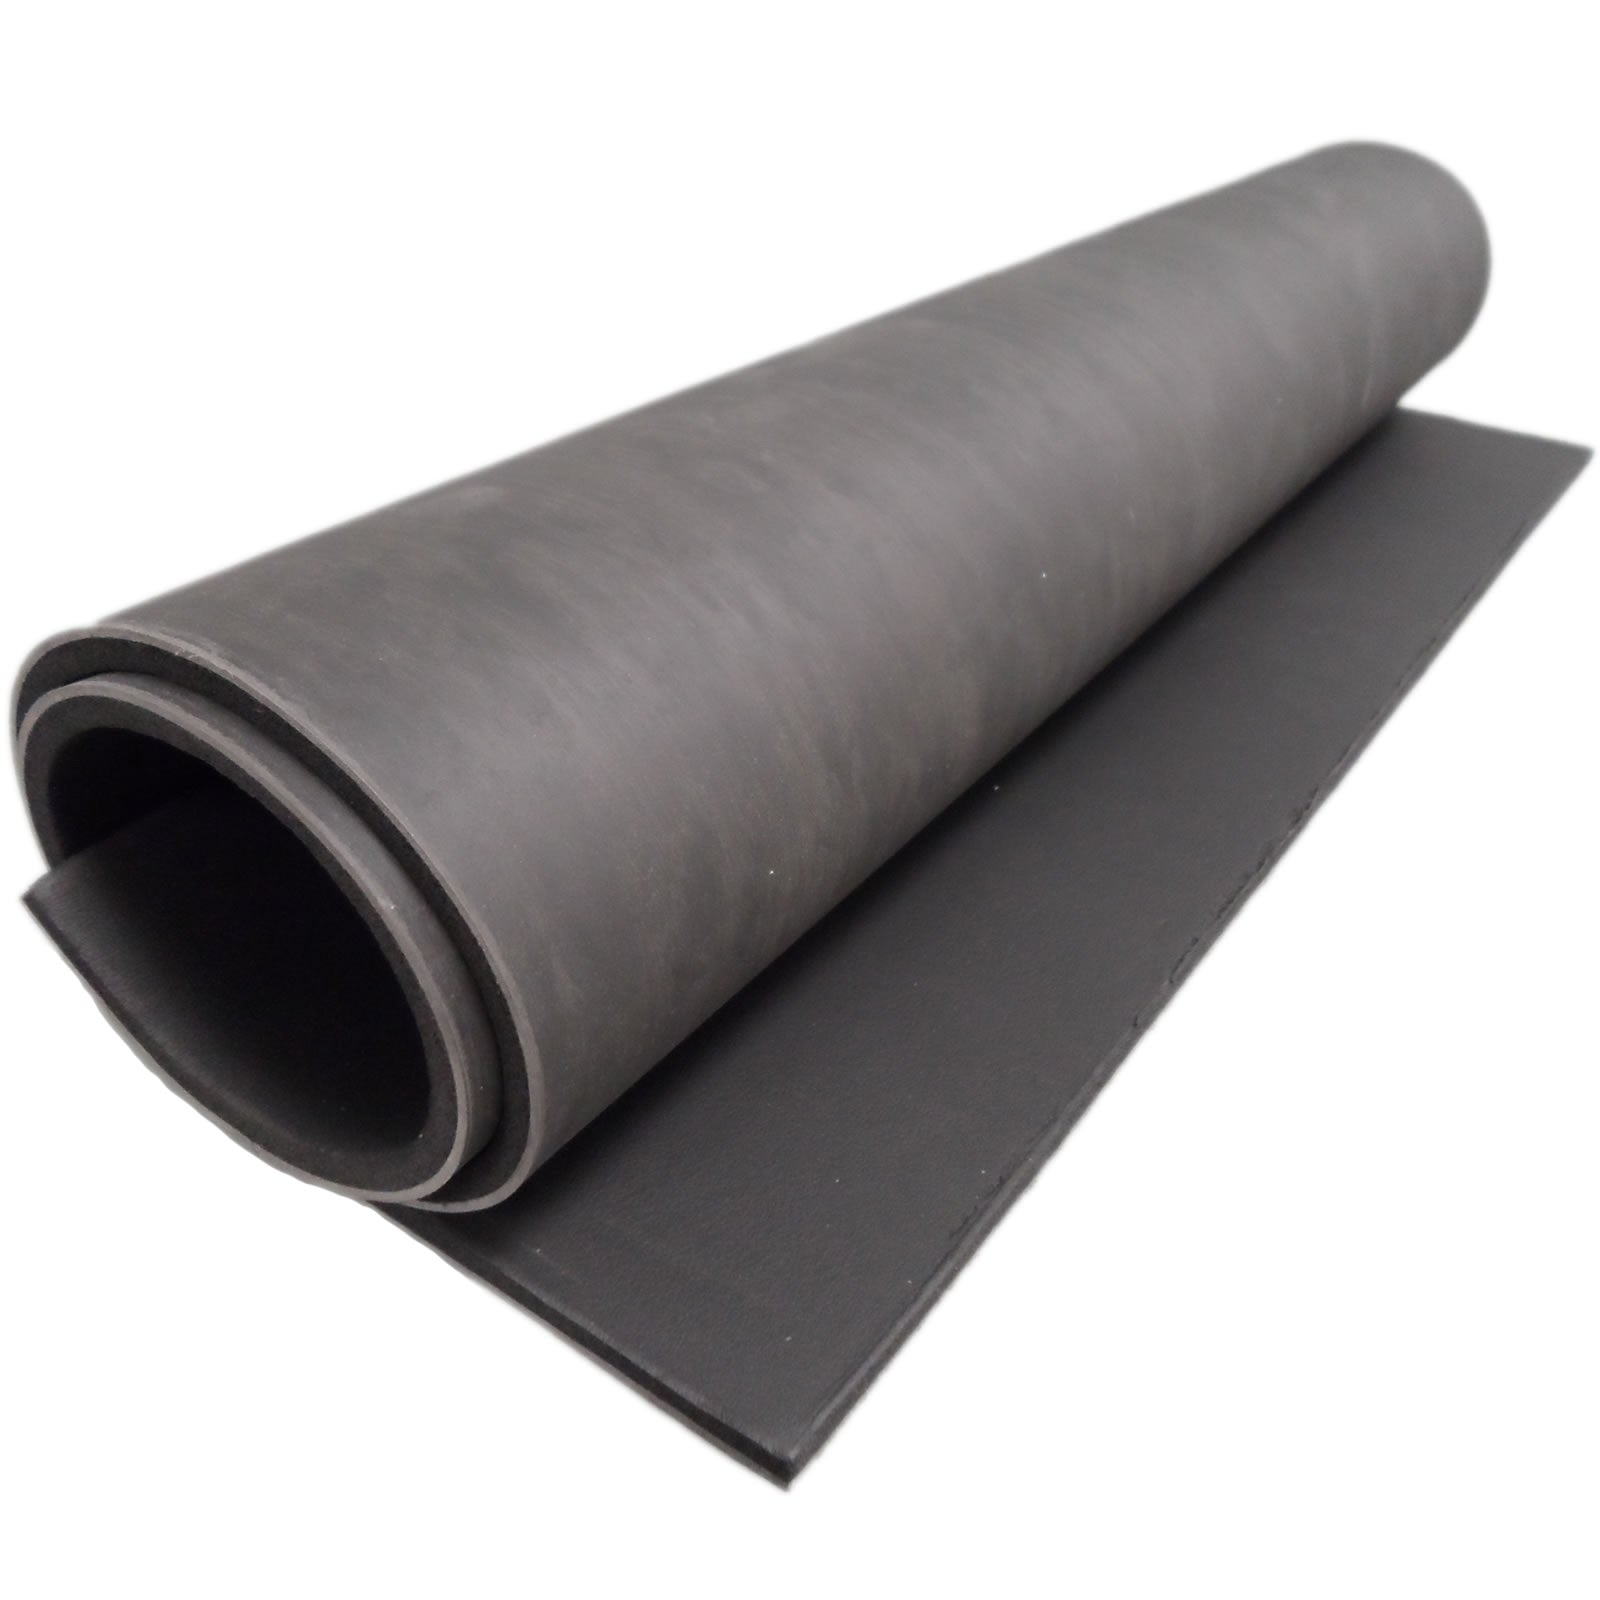 deadening large sound sheet products roll shop isolator mat silent coat